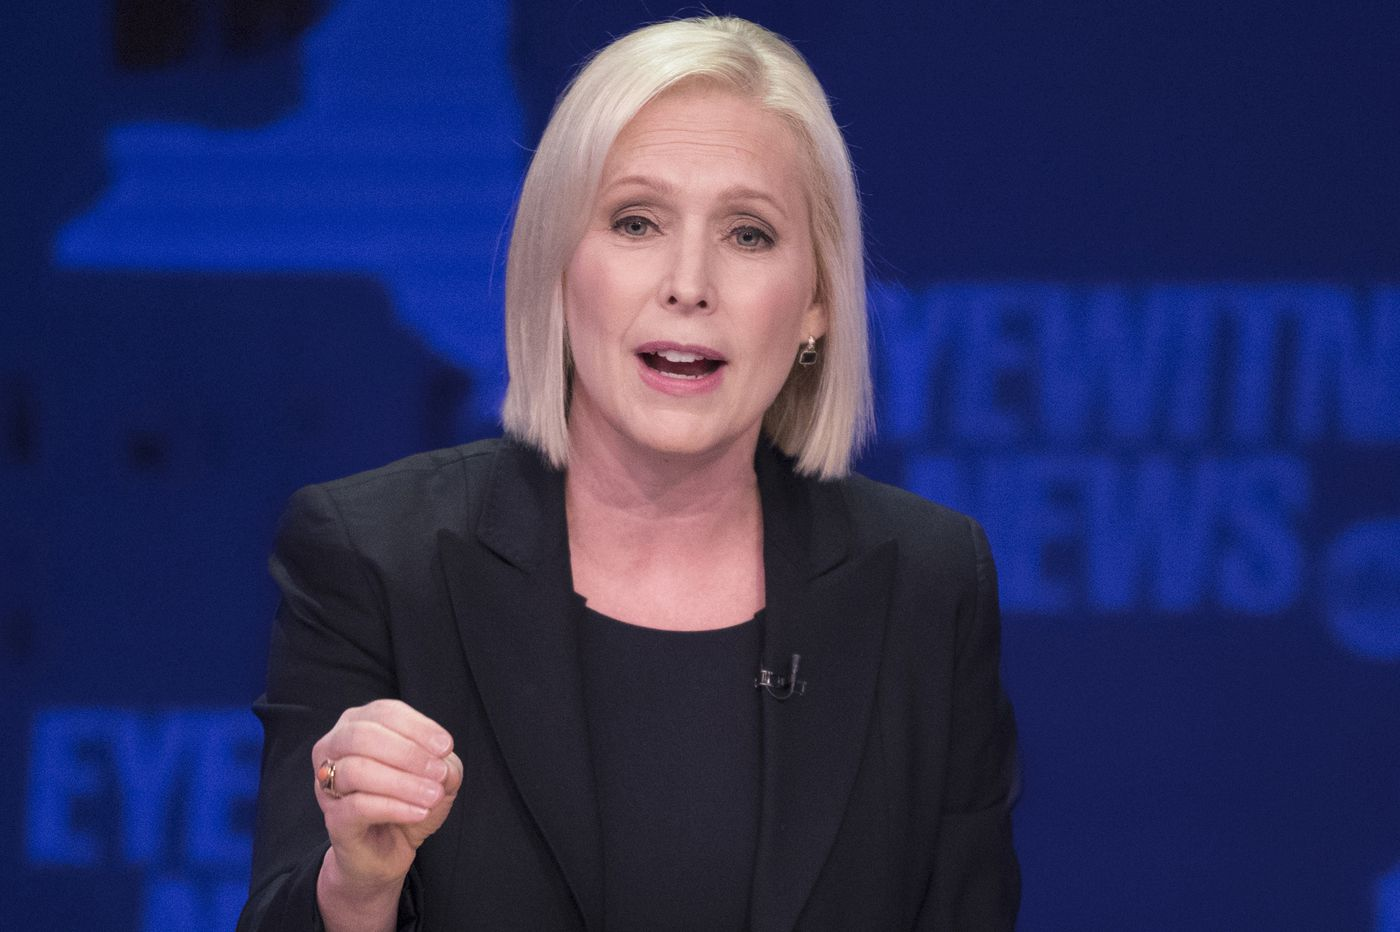 Sen. Kirsten Gillibrand jumps into 2020 presidential race